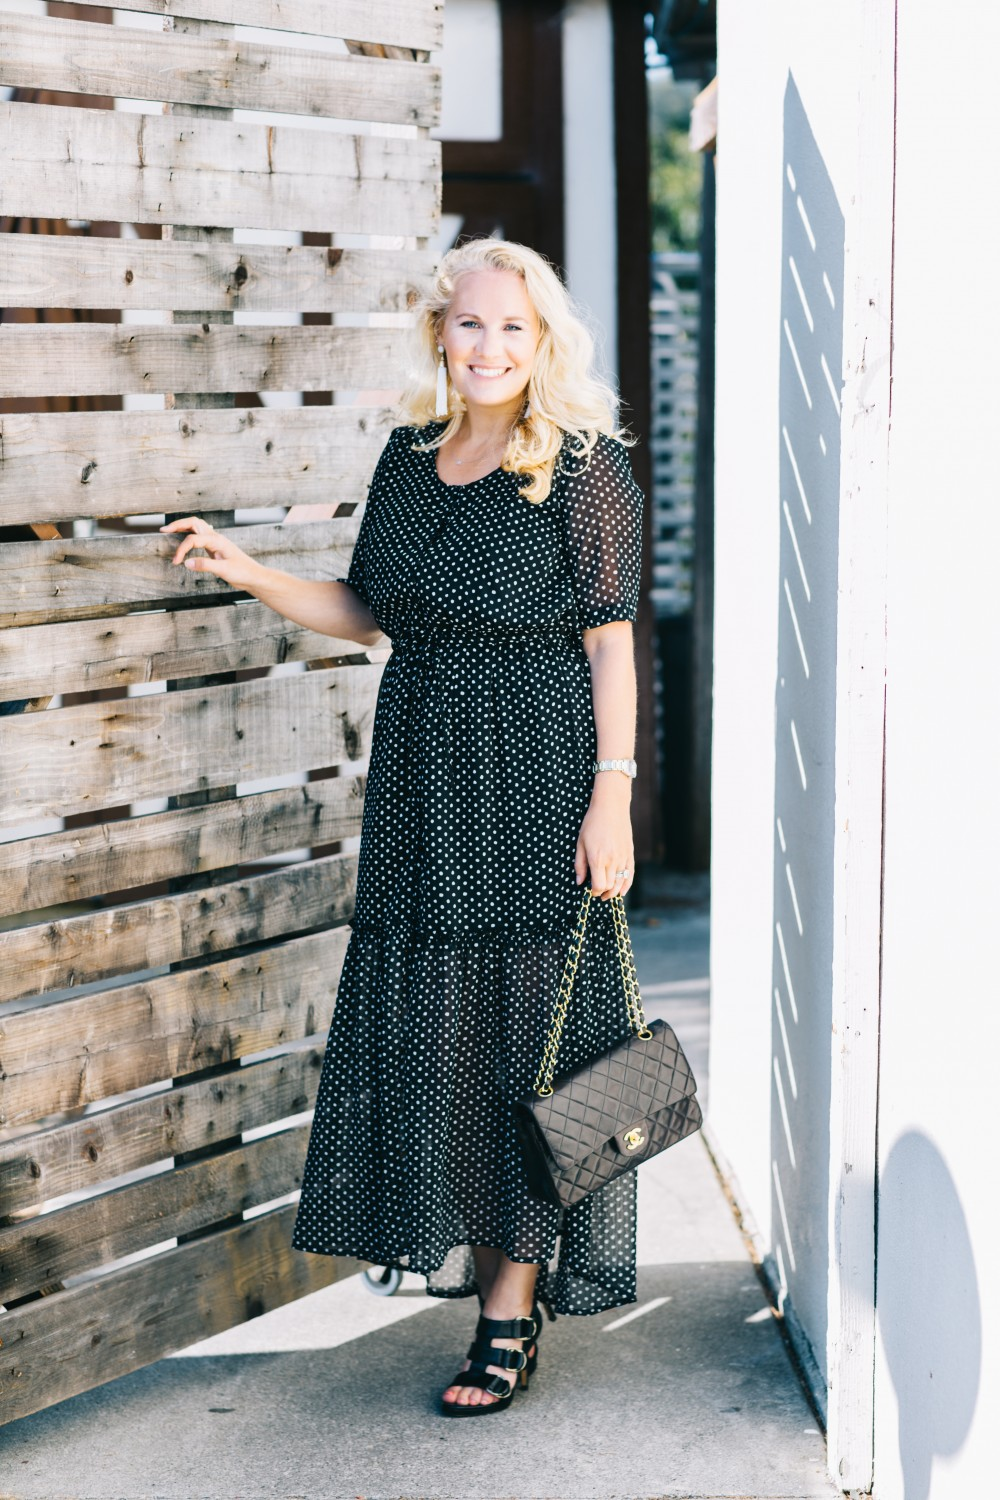 Black and white polka dot dress target